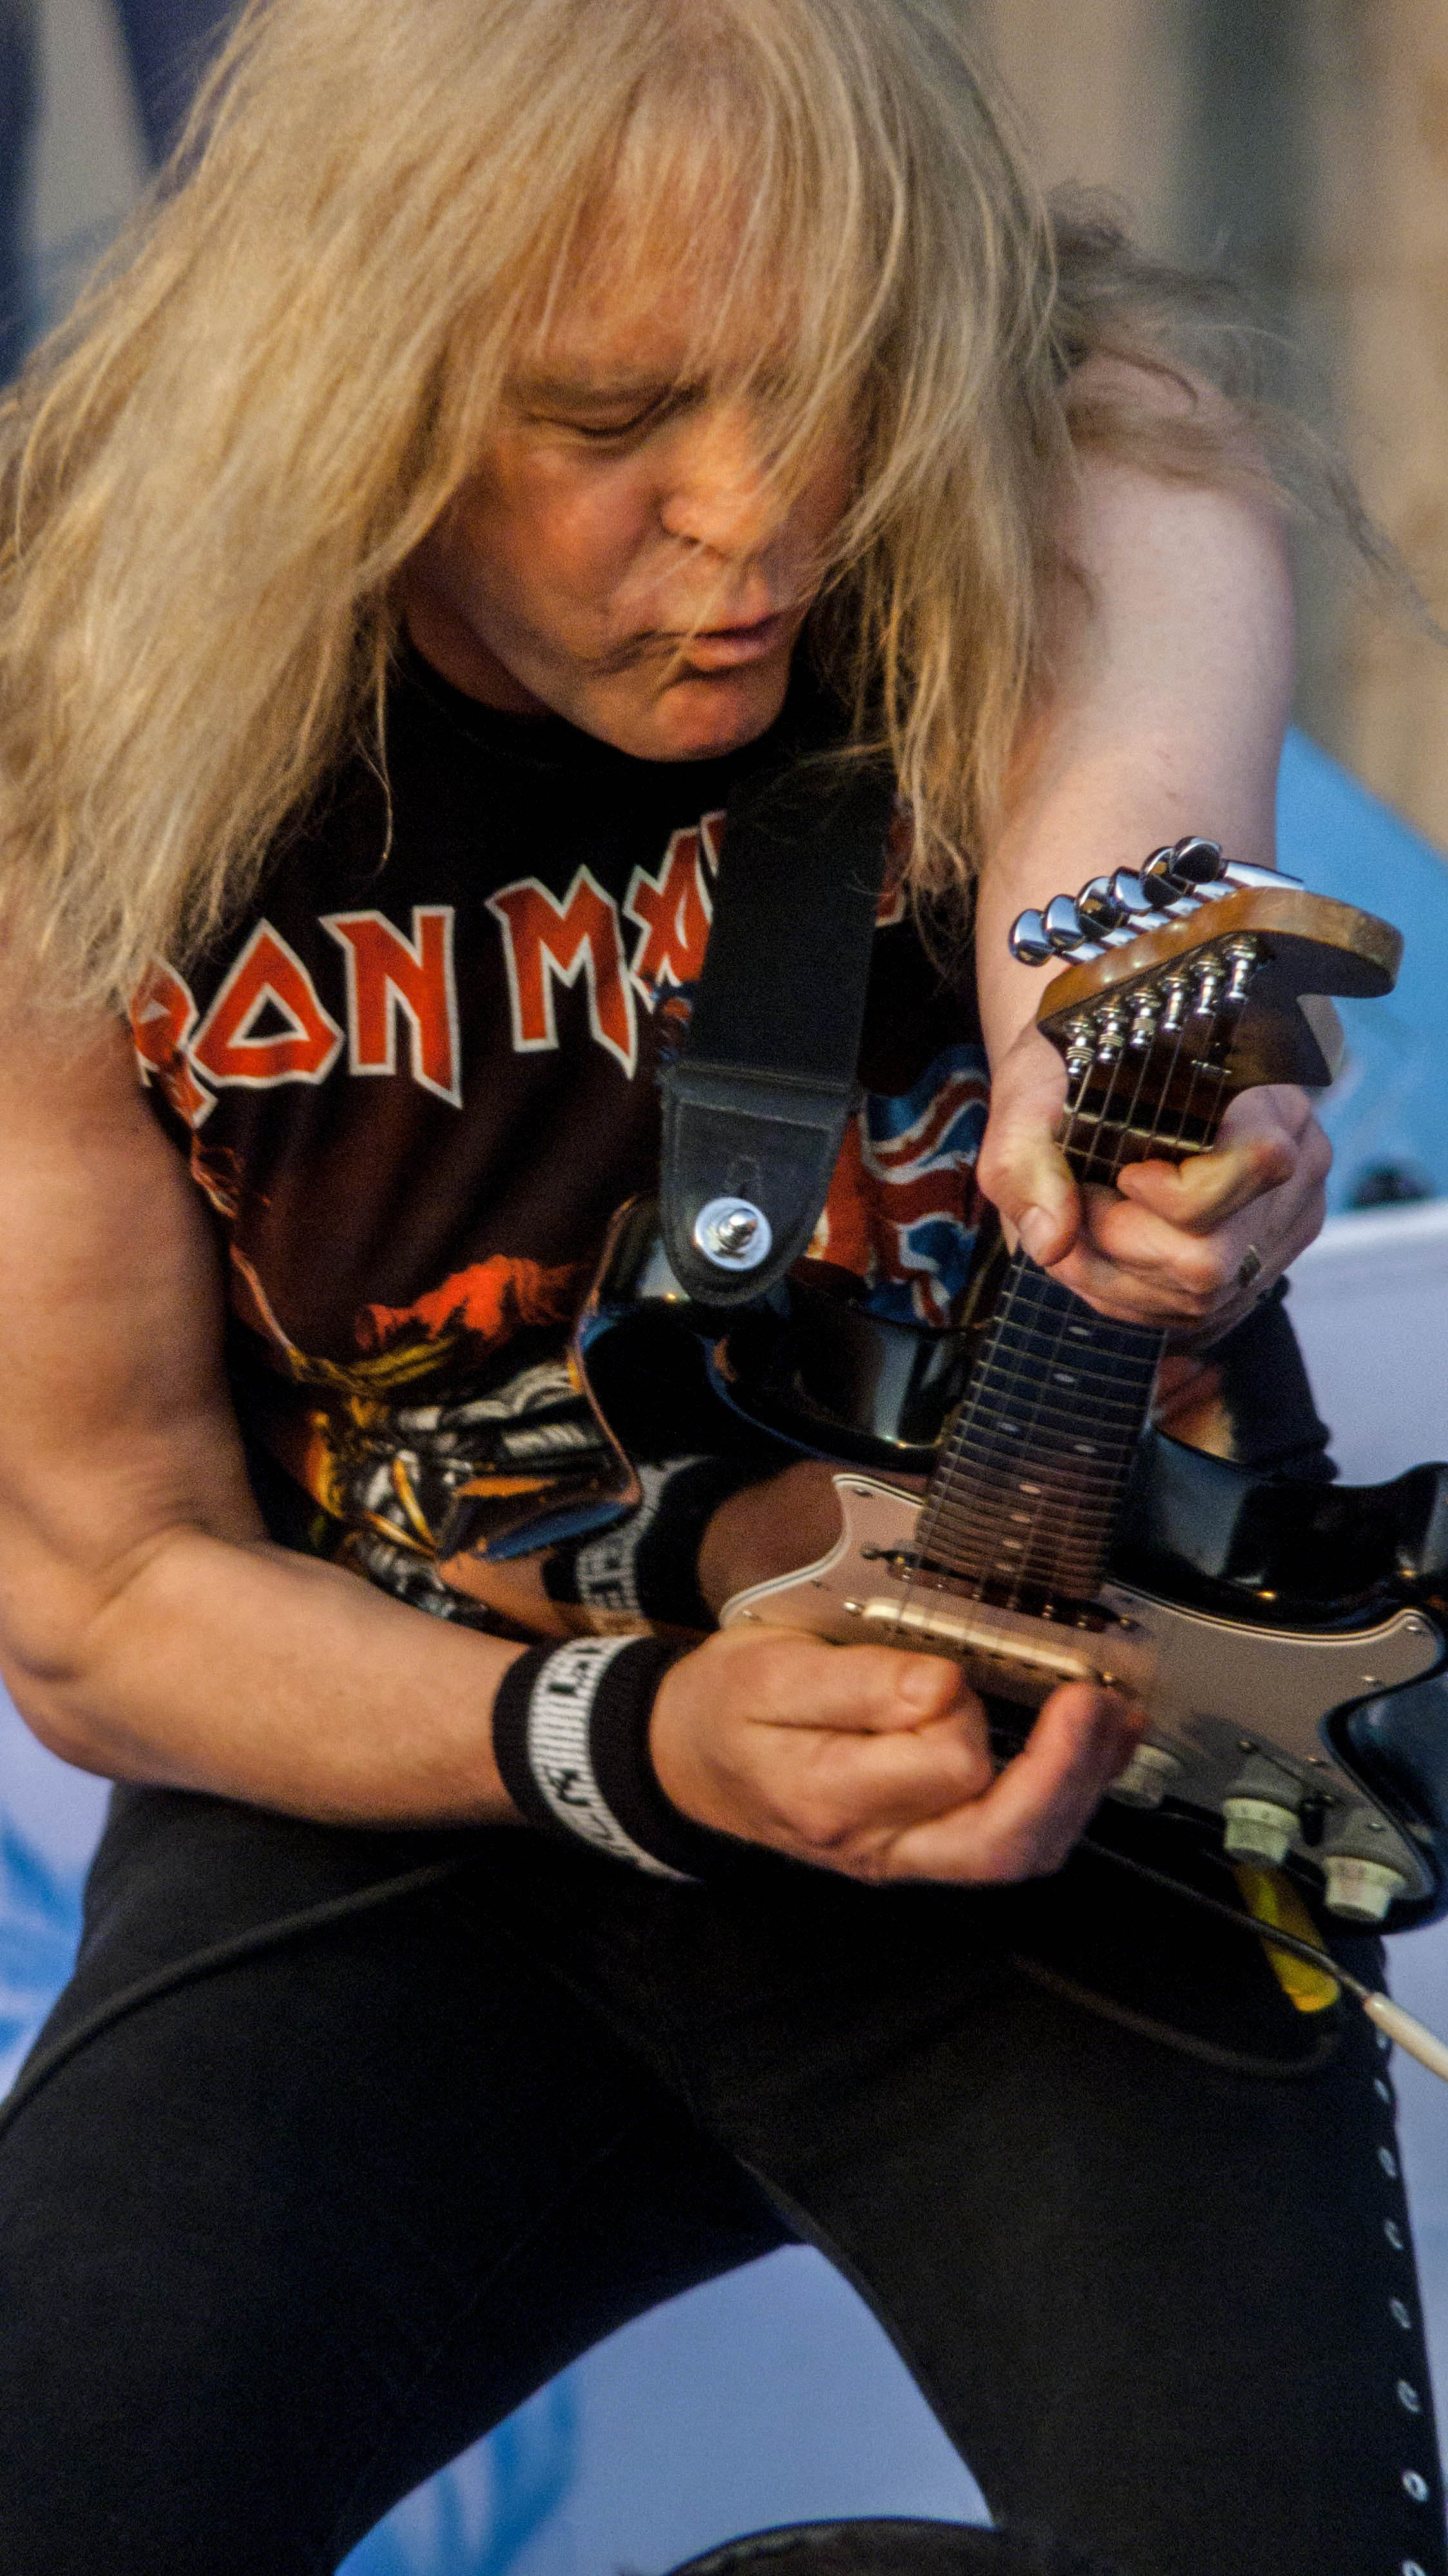 Free stock photo of Iron Maiden - Graspop 2013